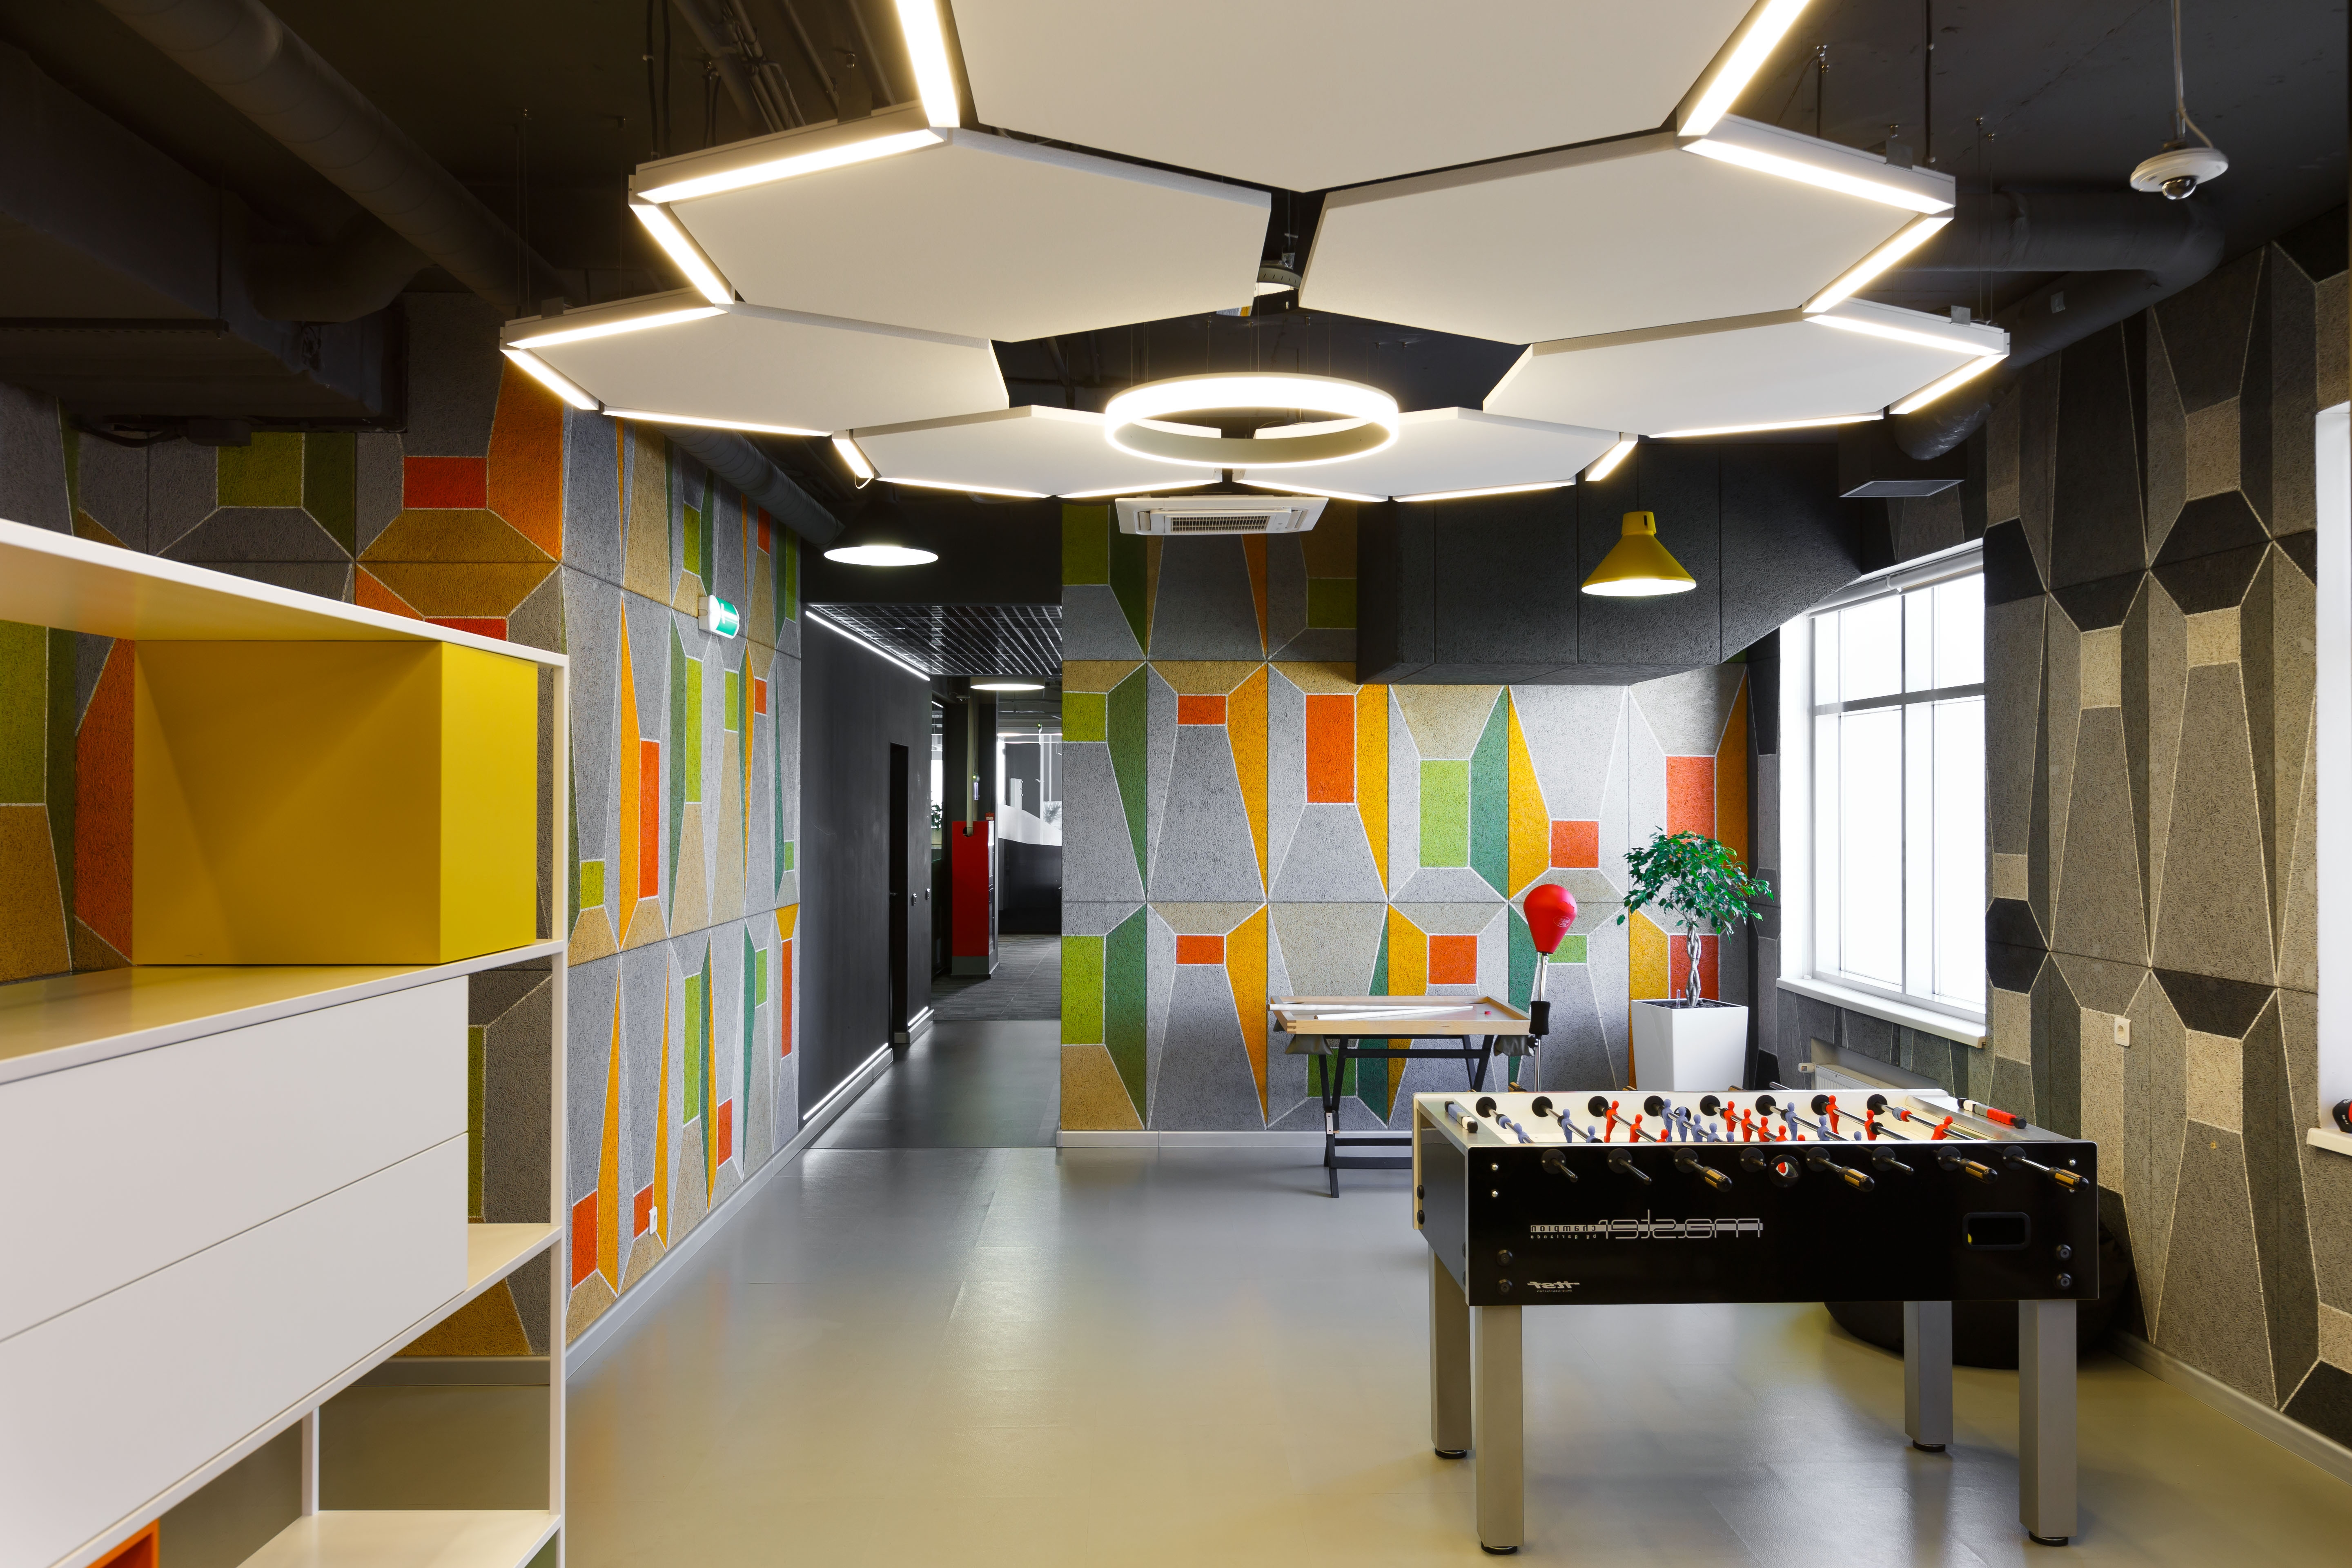 How to Make Office Interior Design Appealing